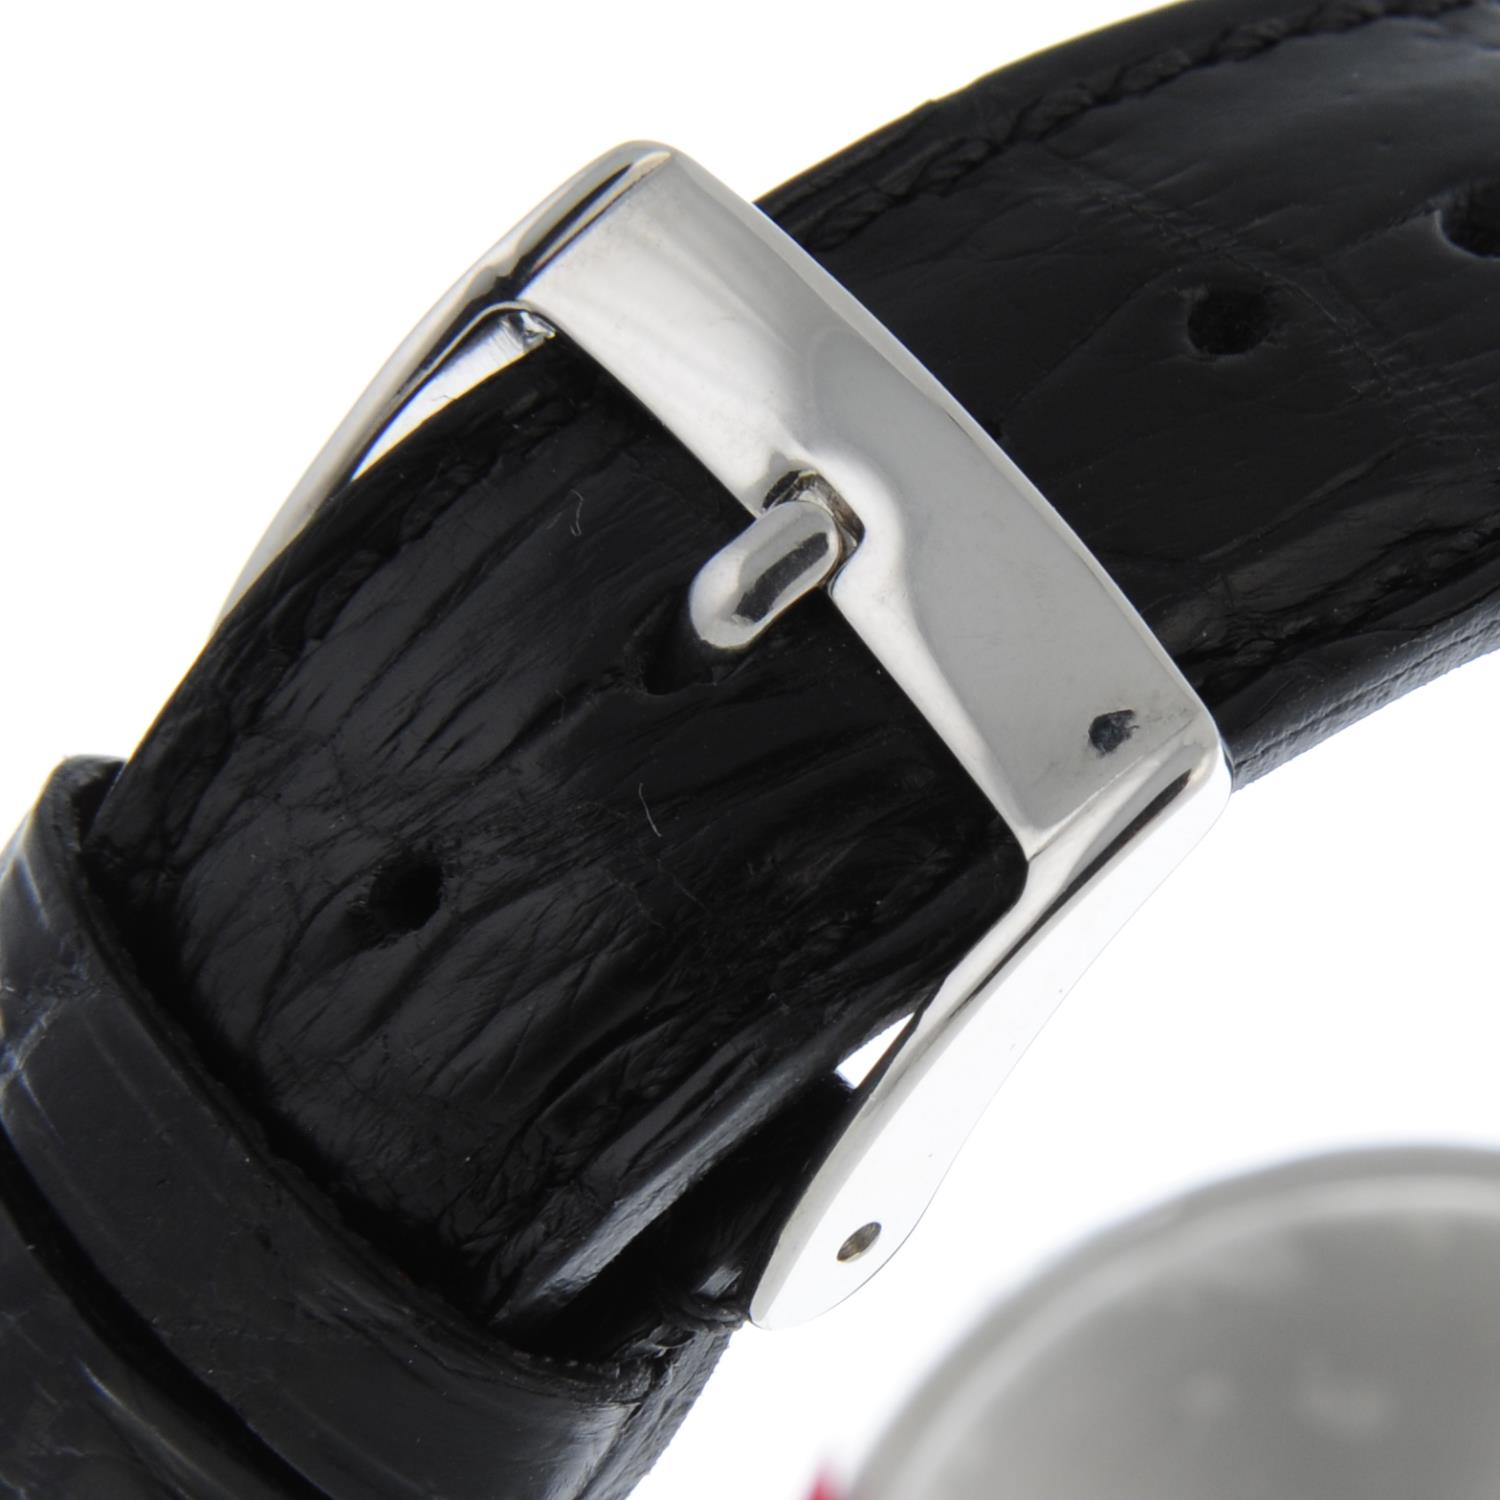 OMEGA - a Scarab wrist watch. - Image 2 of 5